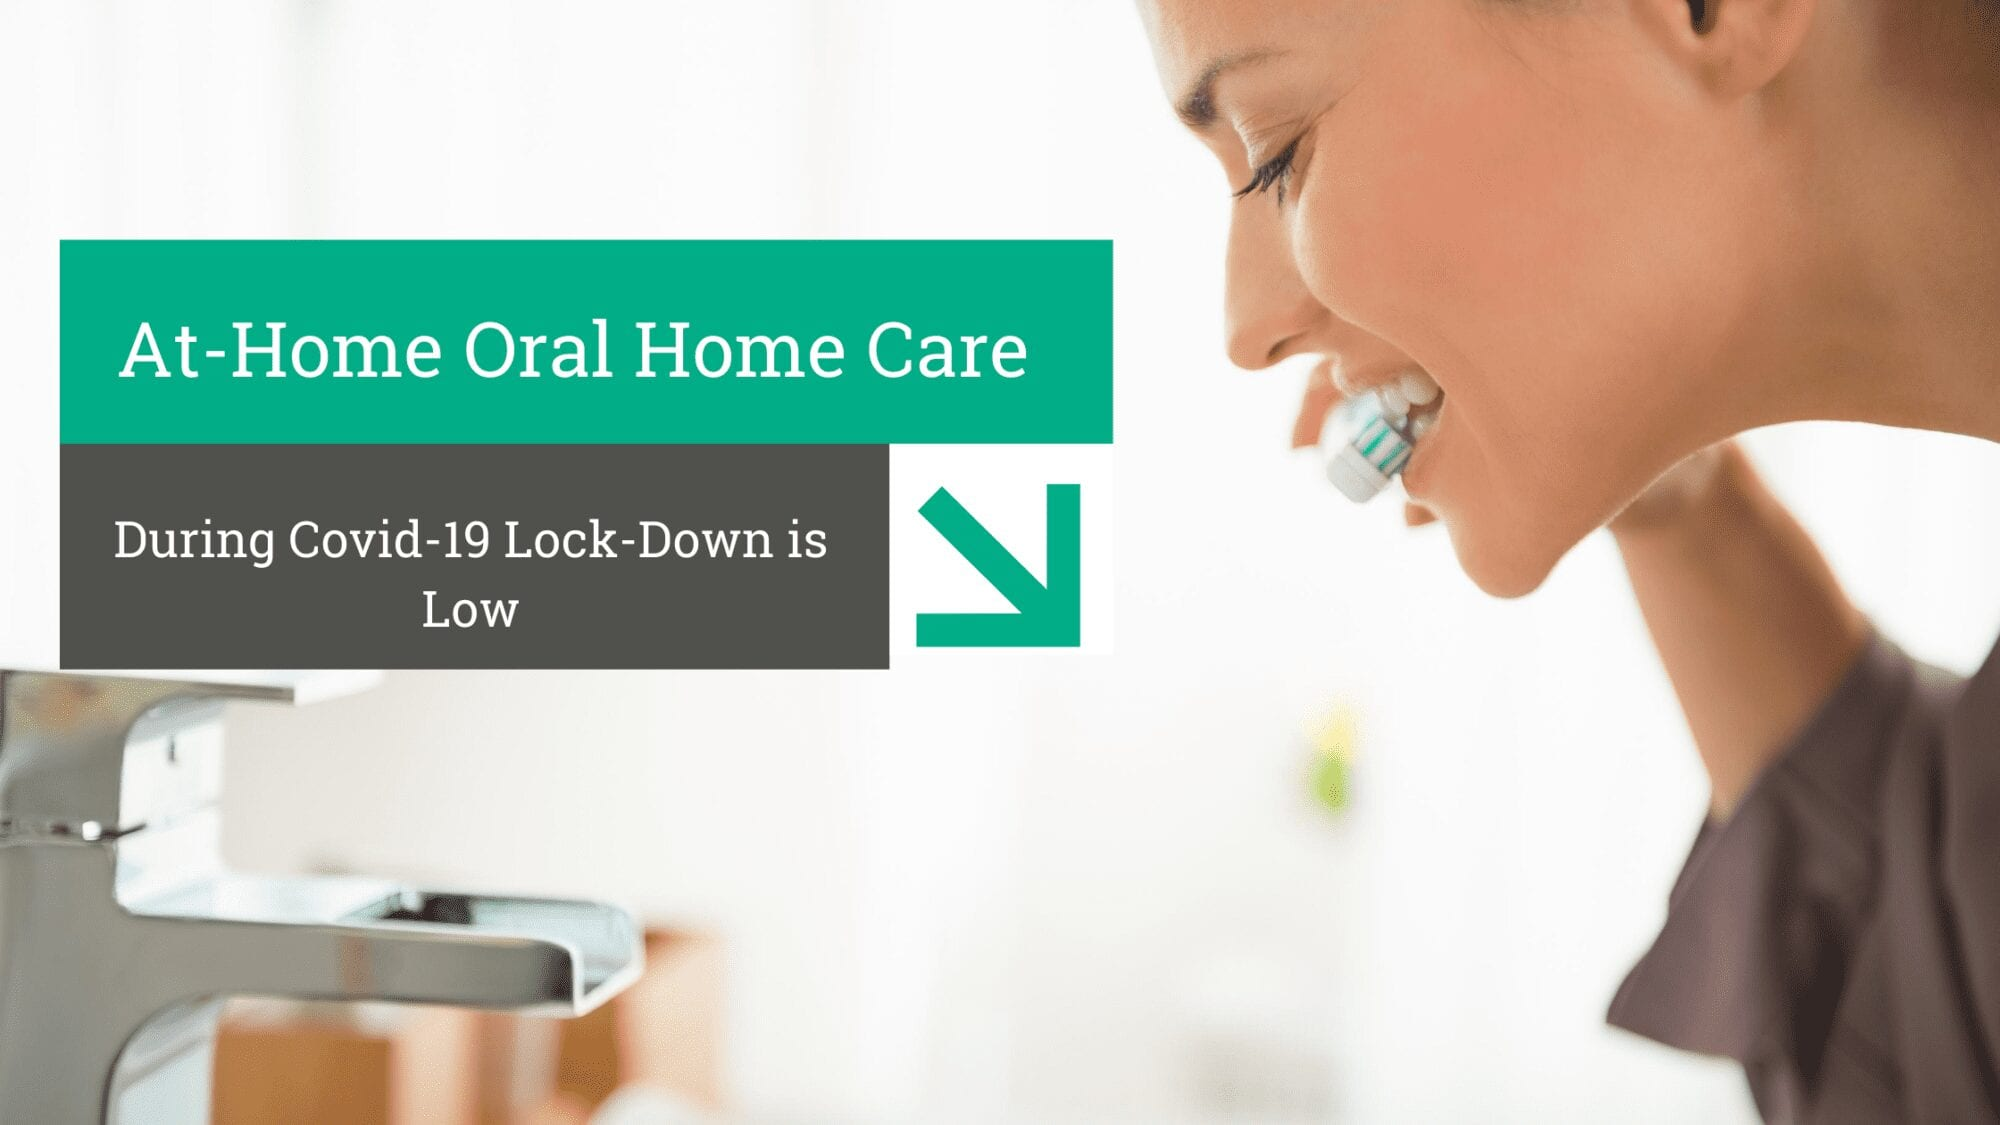 Oral Home Care